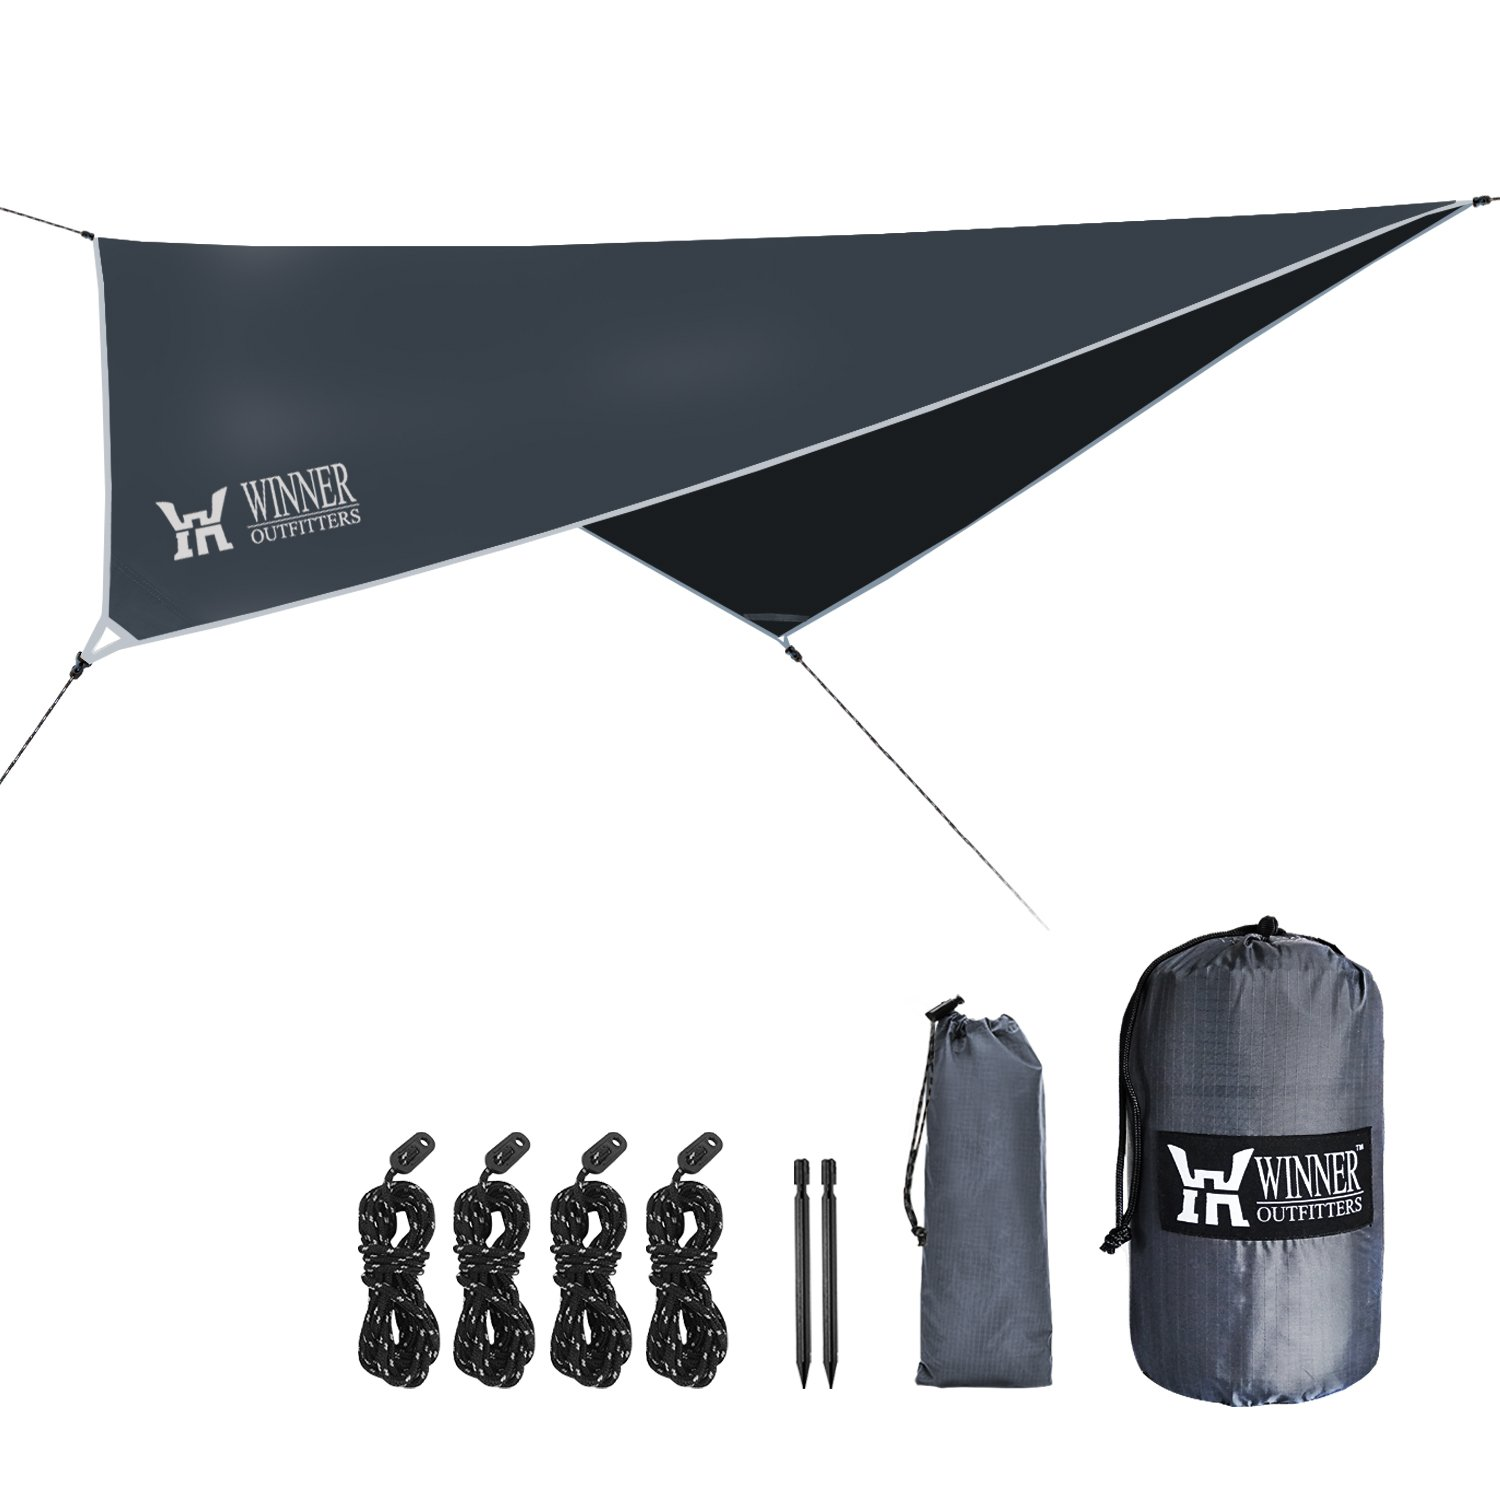 WINNER OUTFITTERS Hammock Rain Fly,Ripstop Nylon Waterproof Tent Tarp Shelter for Camping,Backpacking,Hiking in Sunshade,Moisture,Rain,Lightweight&Portable,Easy Set Up(Diamond) by WINNER OUTFITTERS